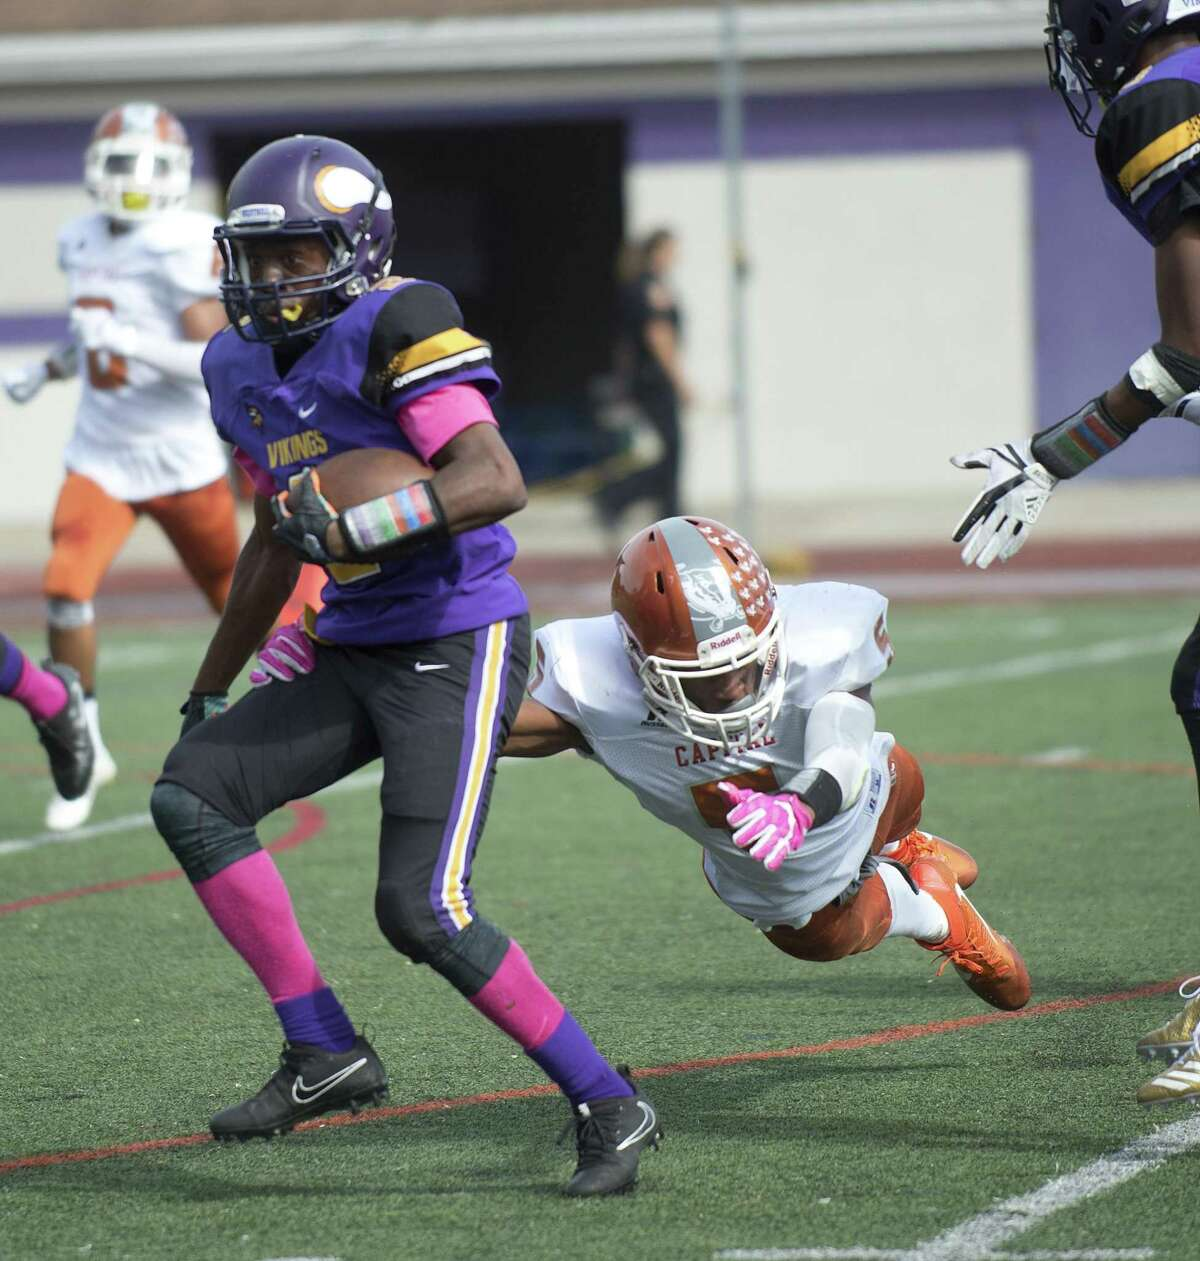 Capital Achievement's Oniel Robinson dives for Westhill's Noldylens Metayer during Saturday's game against Capital Achievement Prep at Westhill High School on October 7, 2017.